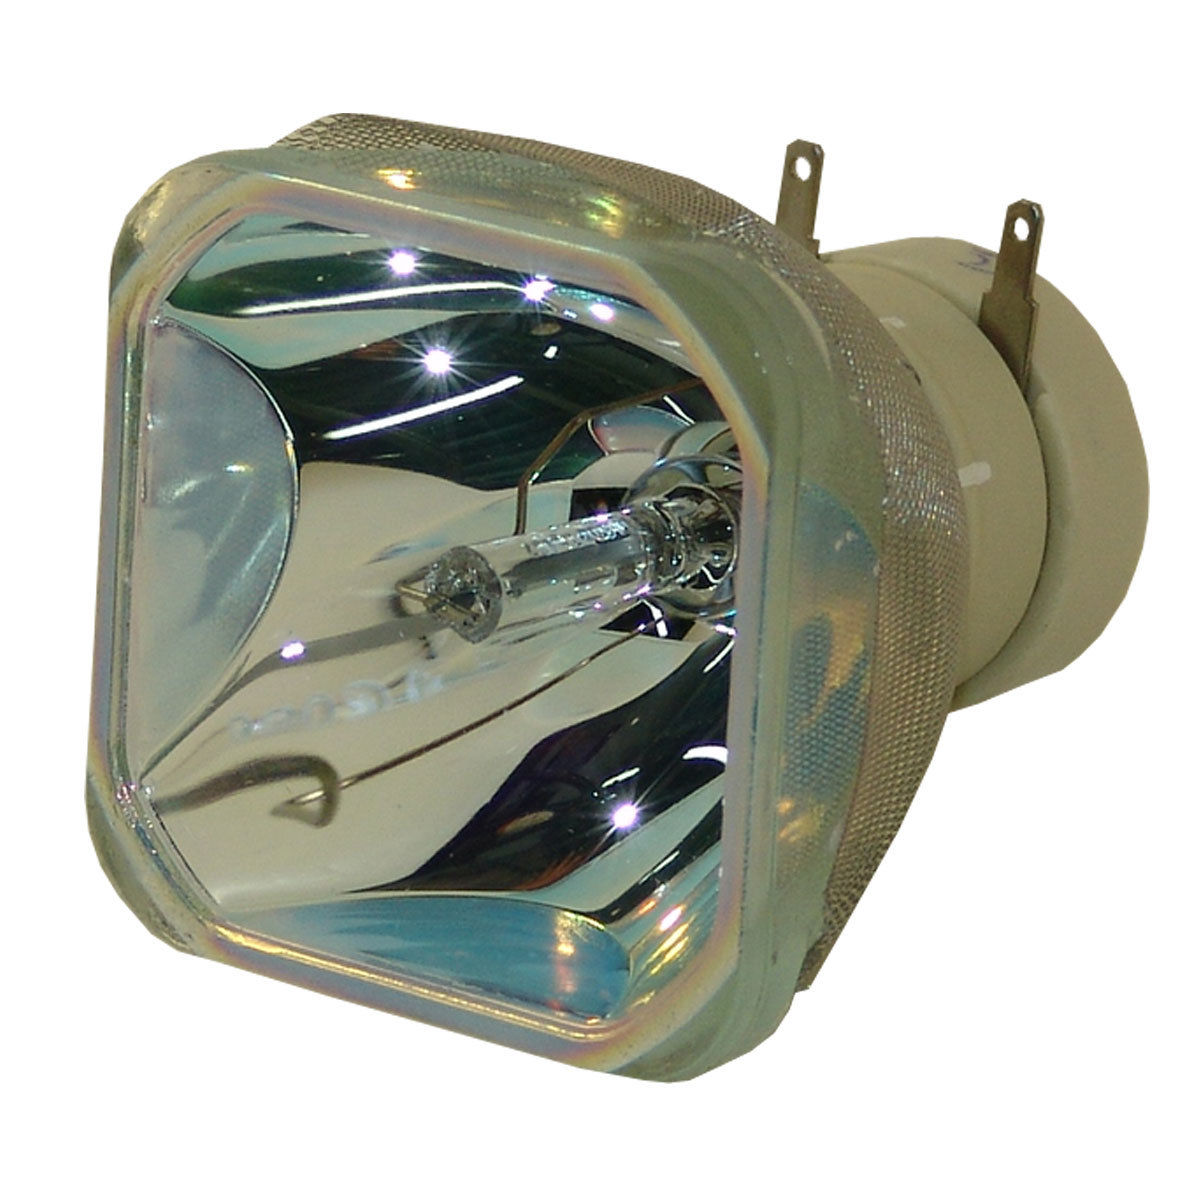 Compatible Bare Bulb LV-LP35 5323B001 for Canon LV-7290 / LV-7295 / LV-7390 / LV-8225 Projector Lamp Bulb without housing compatible bare bulb lv lp29 2542b001aa for canon lv 7585 lv 7590 projector lamp bulb without housing